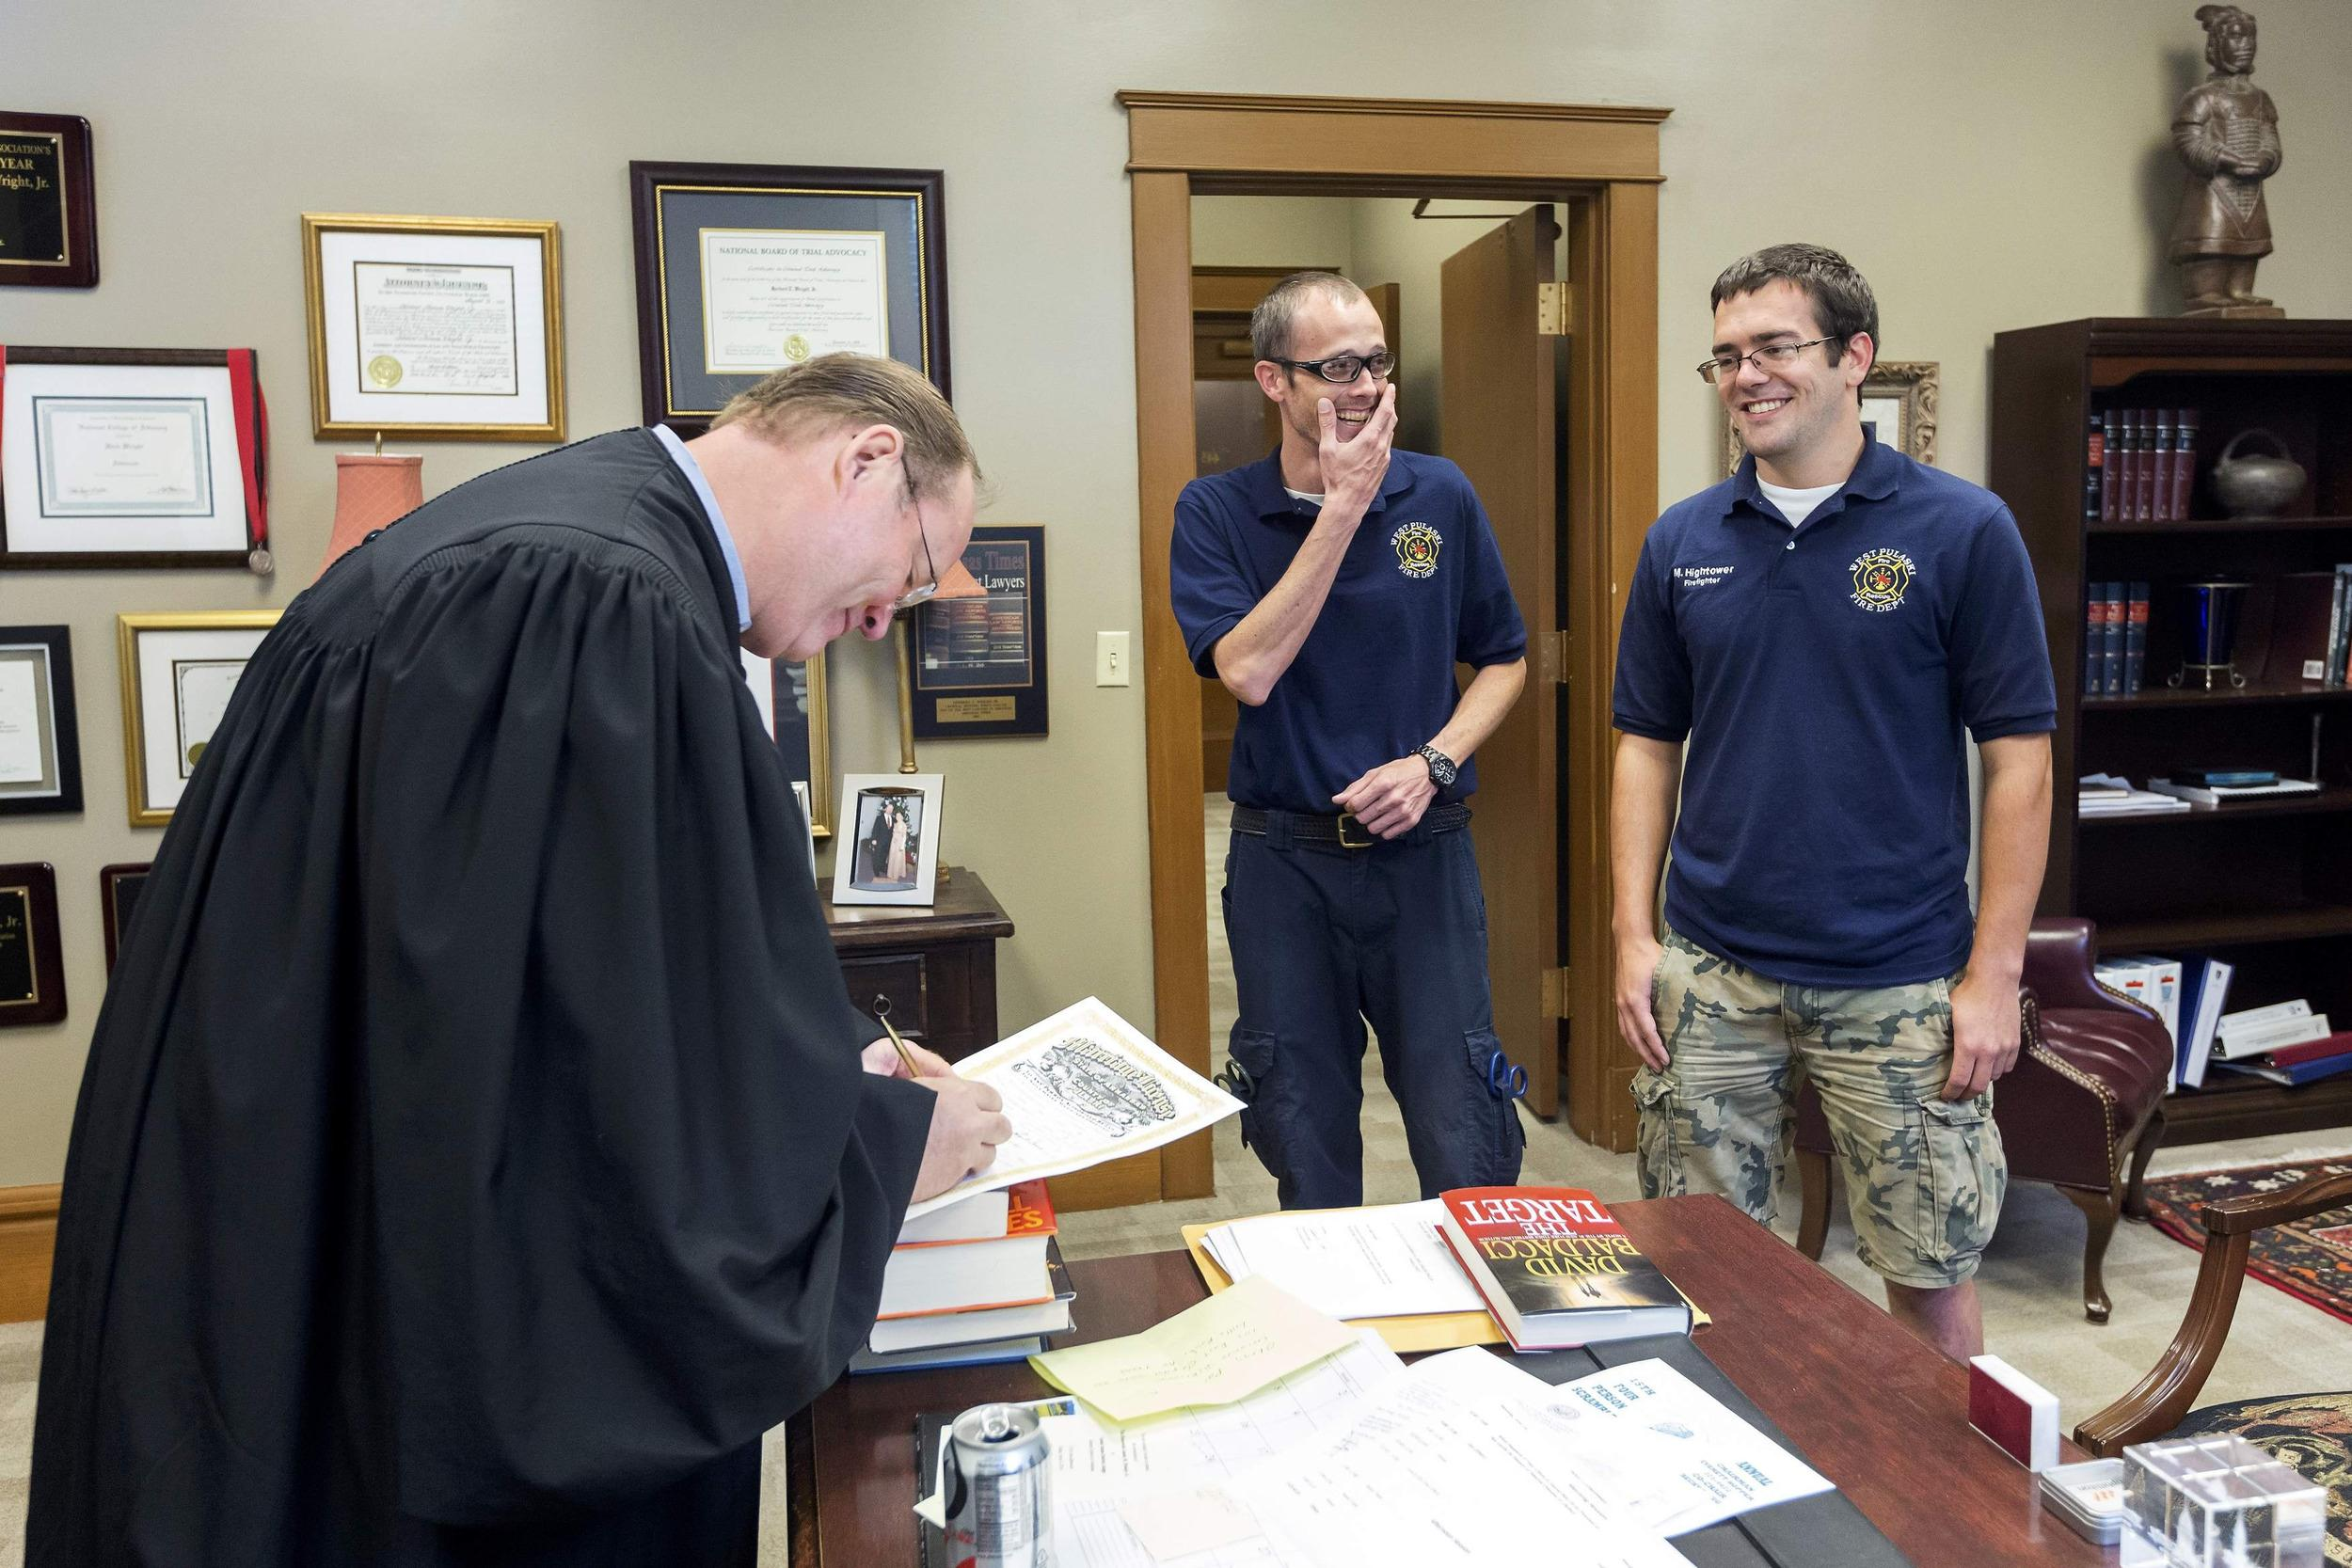 Image: Judge Herbert Wright signs the marriage license of Steven Gibson and Mark Hightower in the Judges chambers at the Pulaski County Courthouse in Little Rock